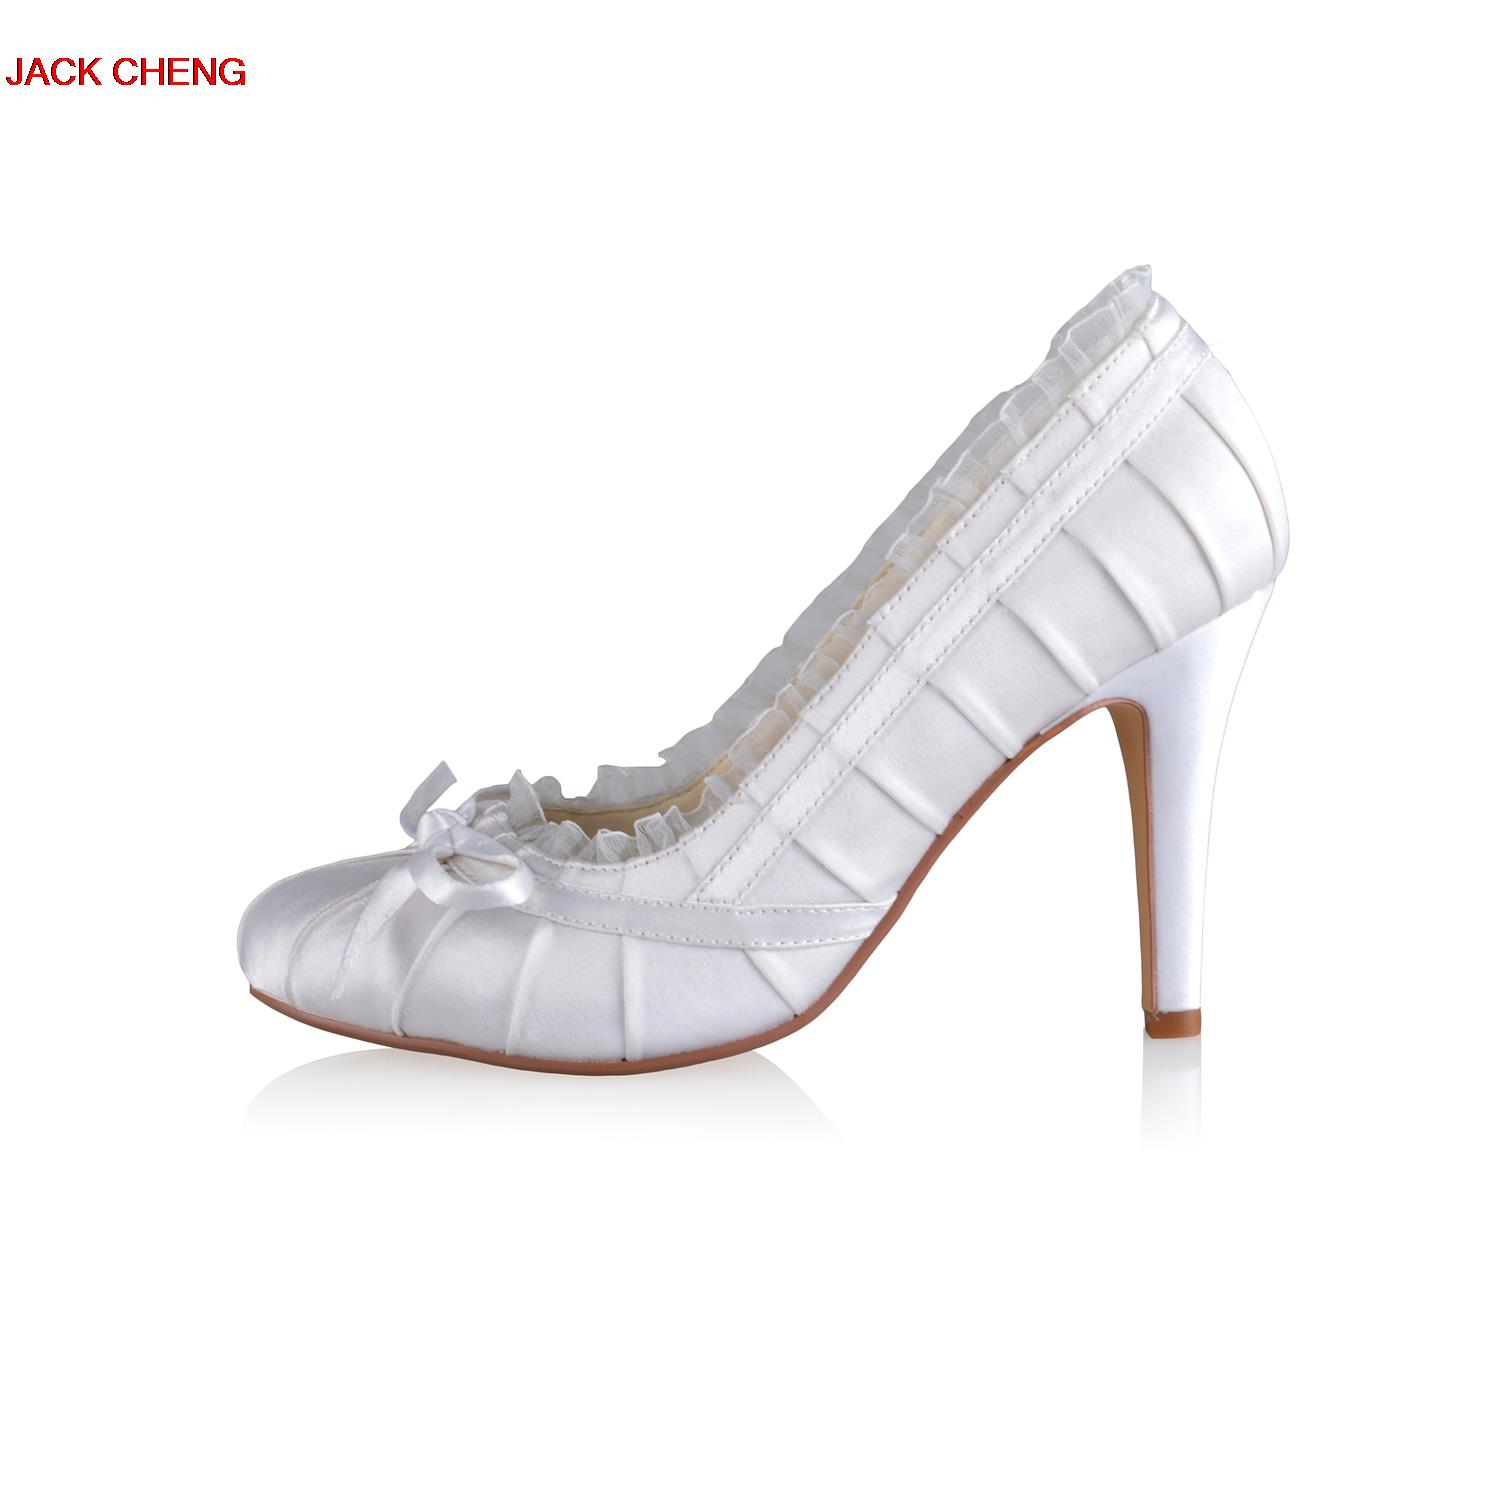 Luxury white flower ballroom dance shoes high heels 2018 new sandals luxury white flower ballroom dance shoes high heels 2018 new sandals for women high heels elegant wedding bridal shoes in womens pumps from shoes on mightylinksfo